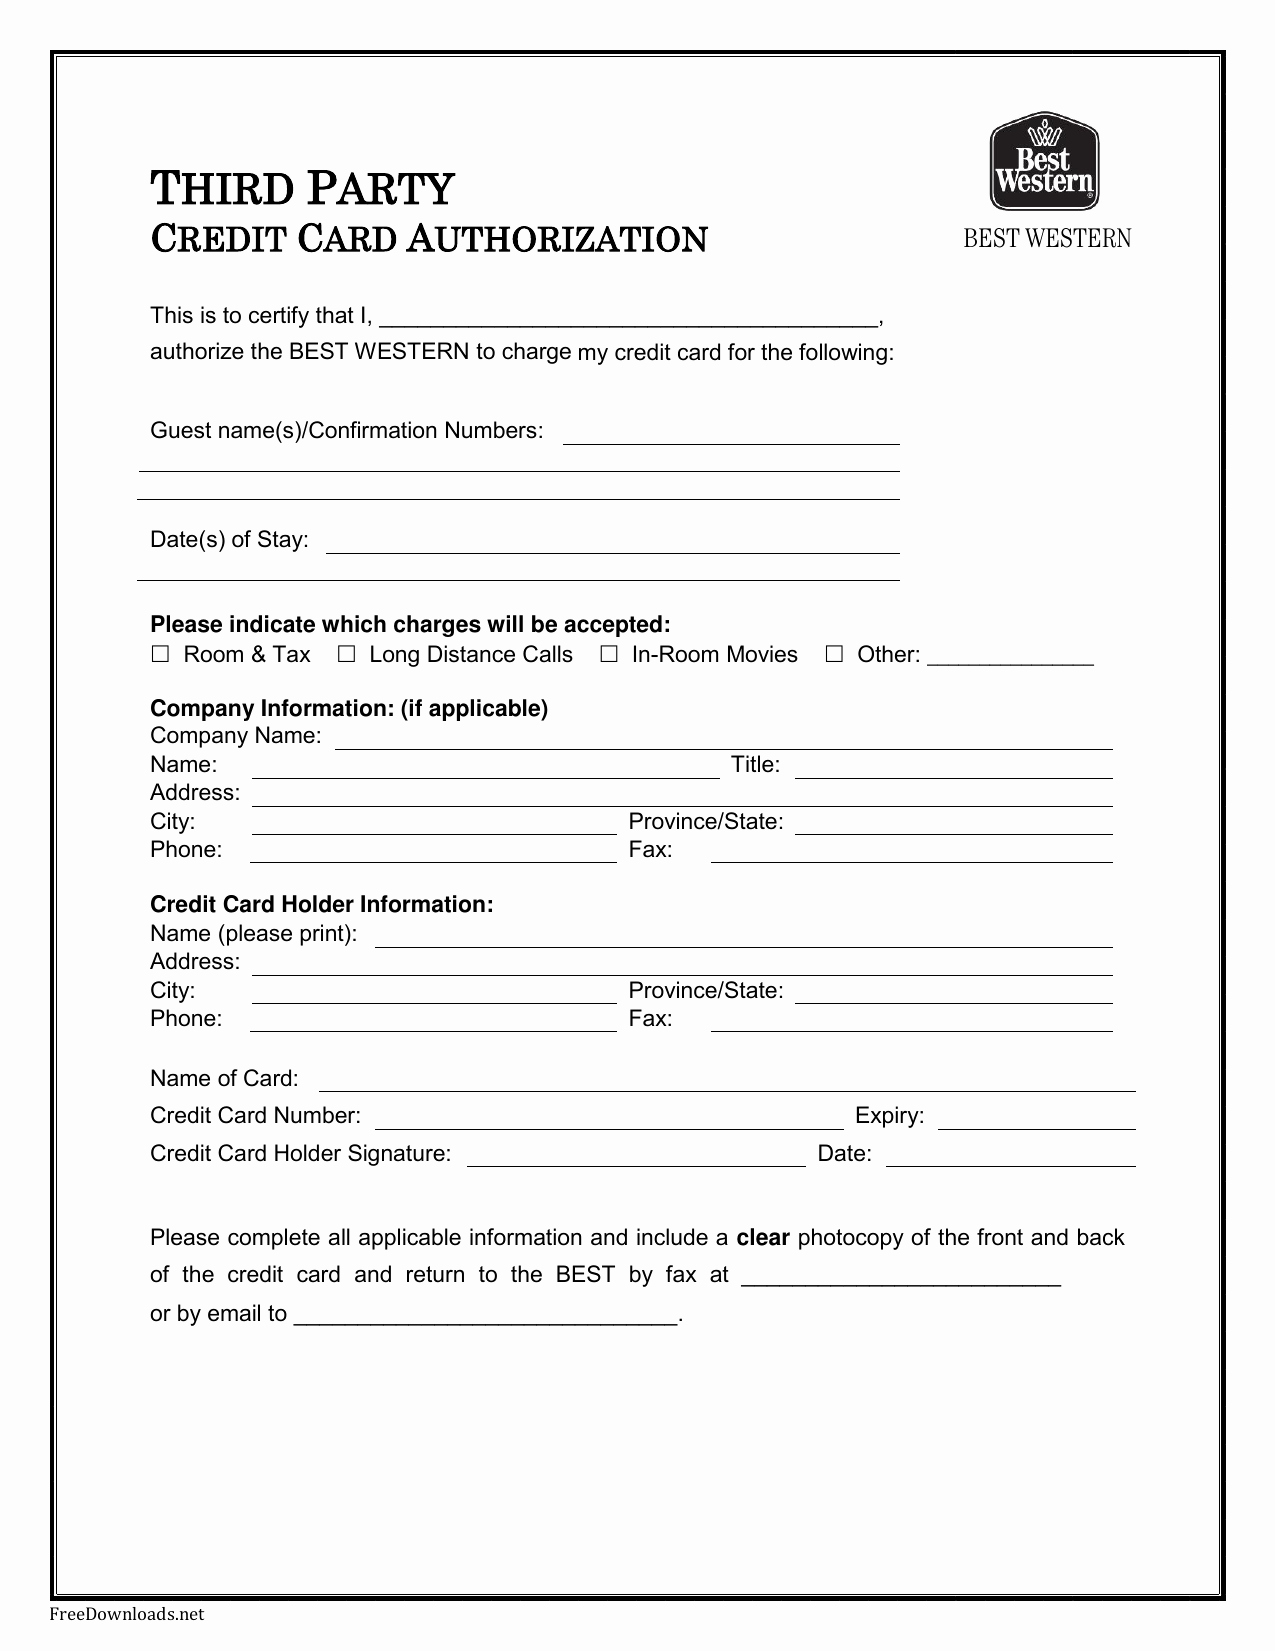 3rd Party Authorization form Template Unique Download Best Western Credit Card Authorization form